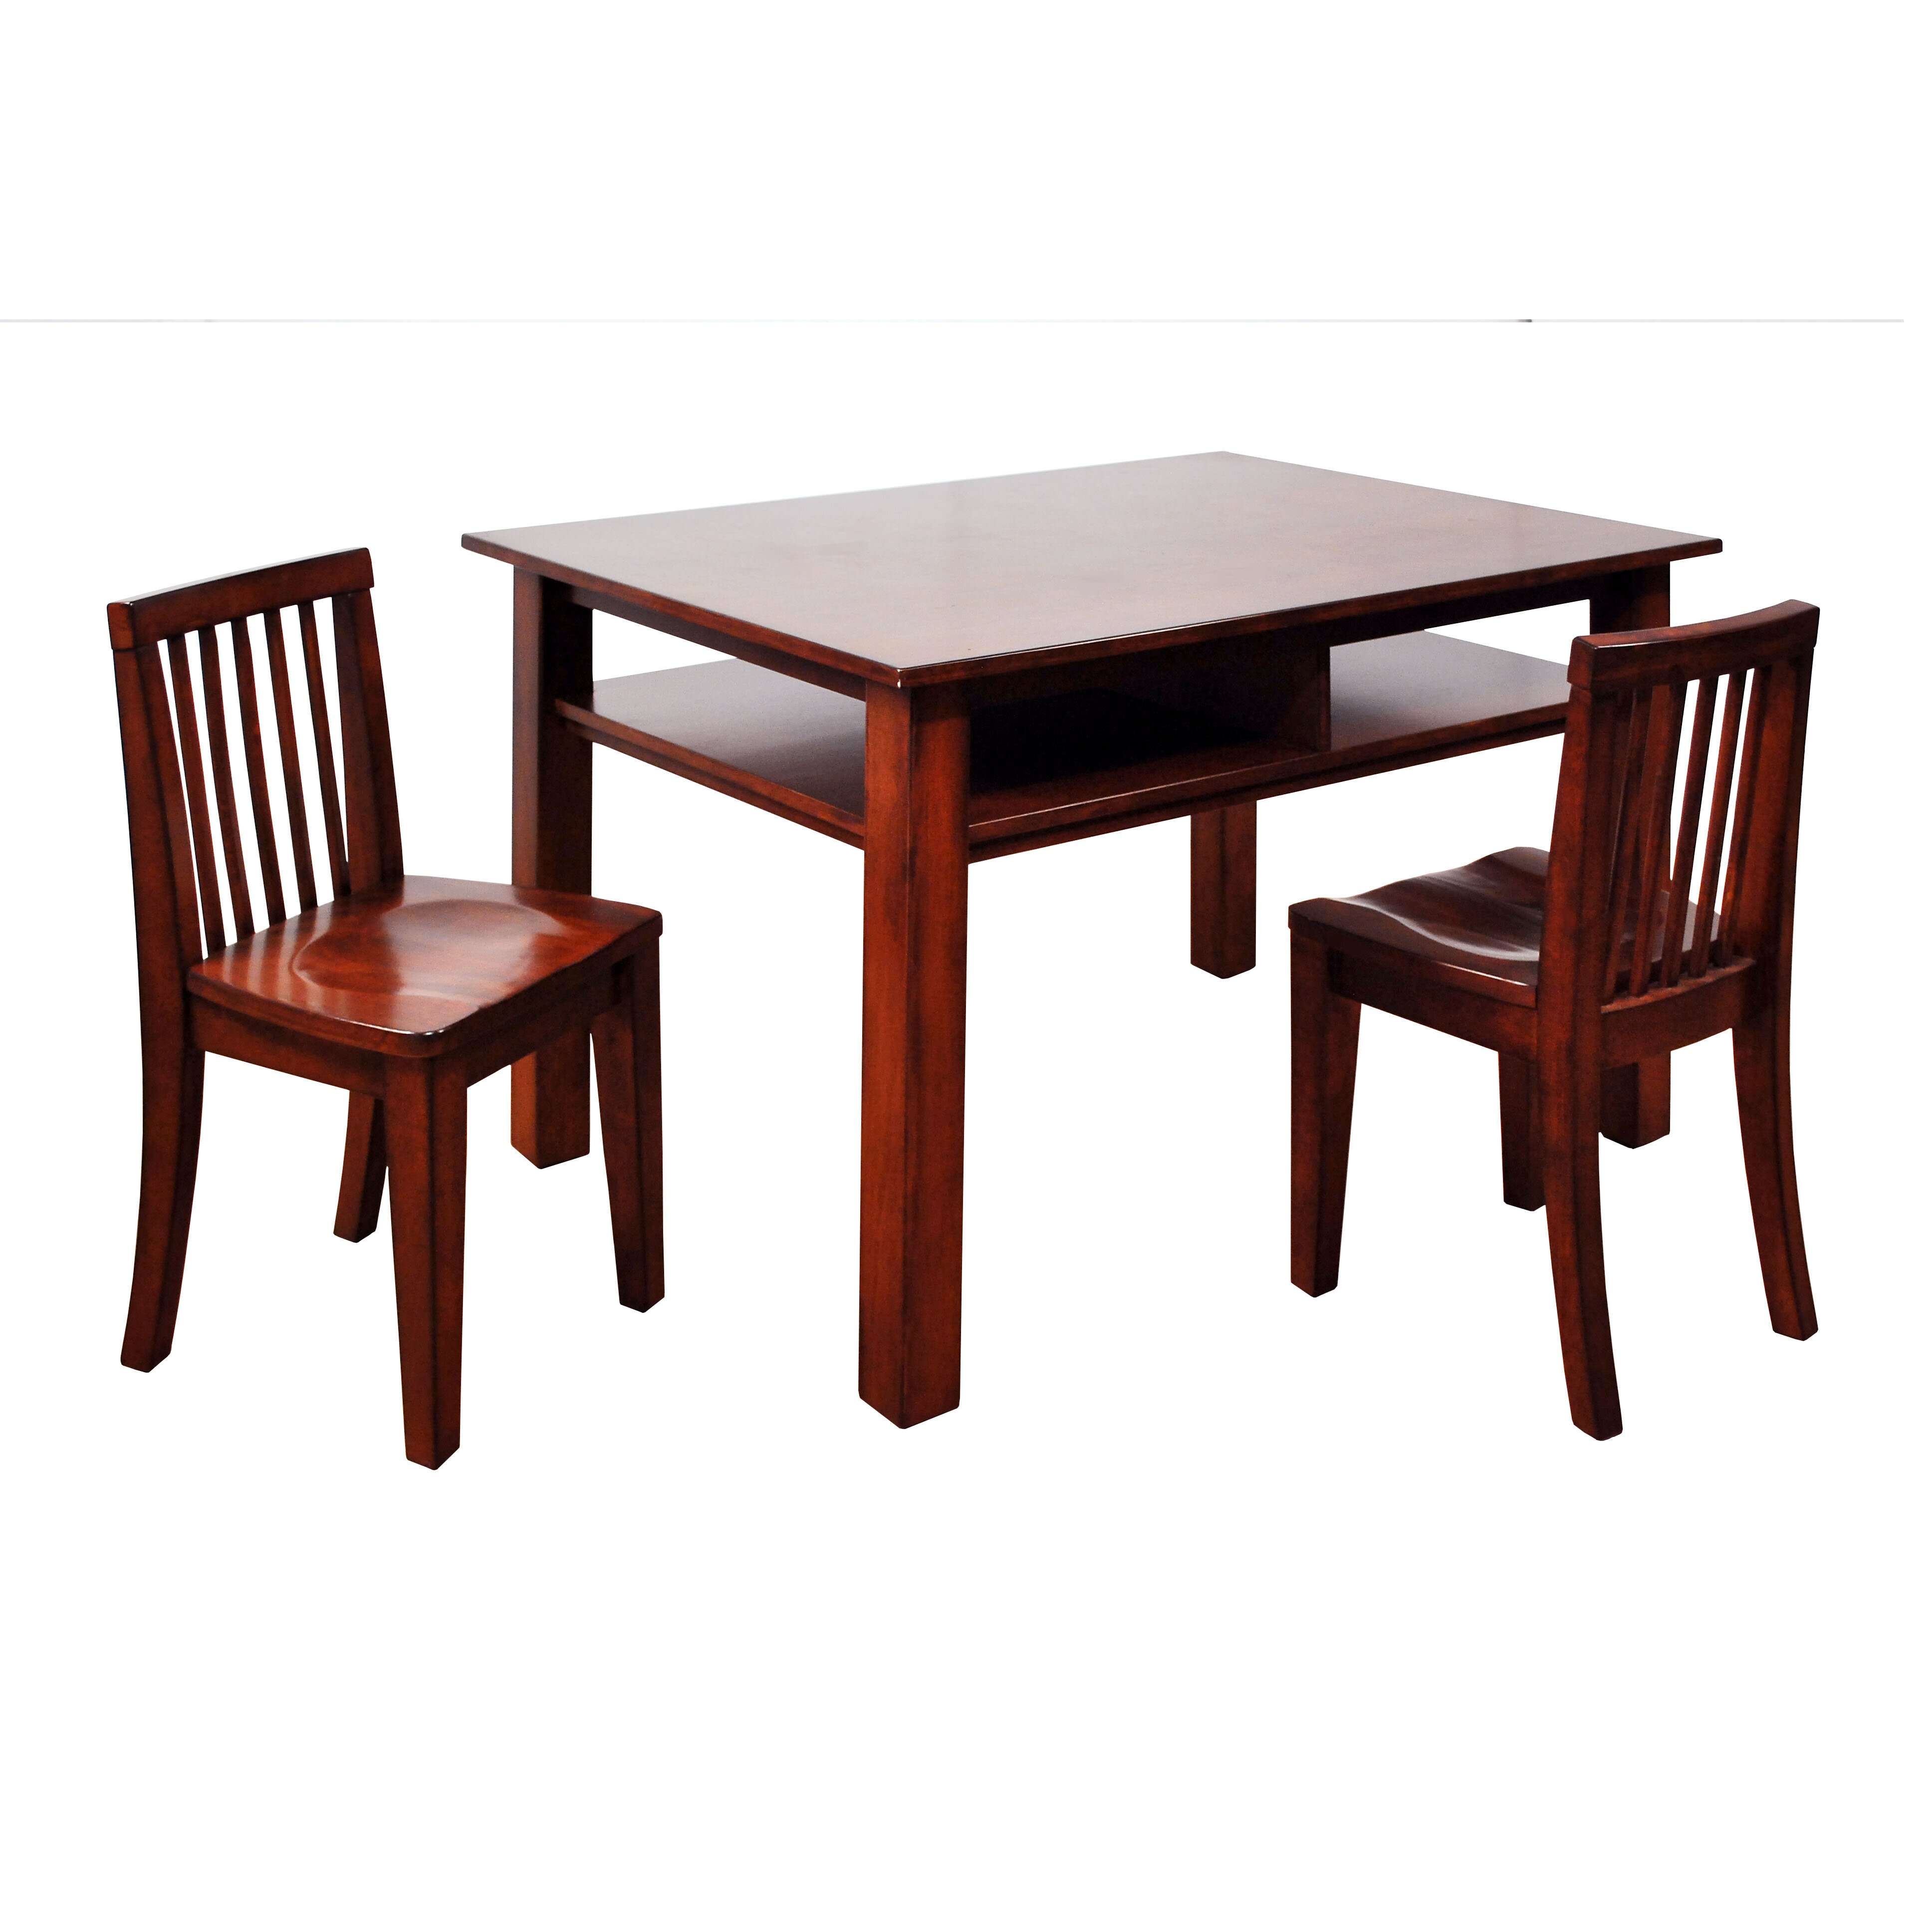 Table Set For Kids Afg International Furniture Athena Newton Kids Table And Chair Set